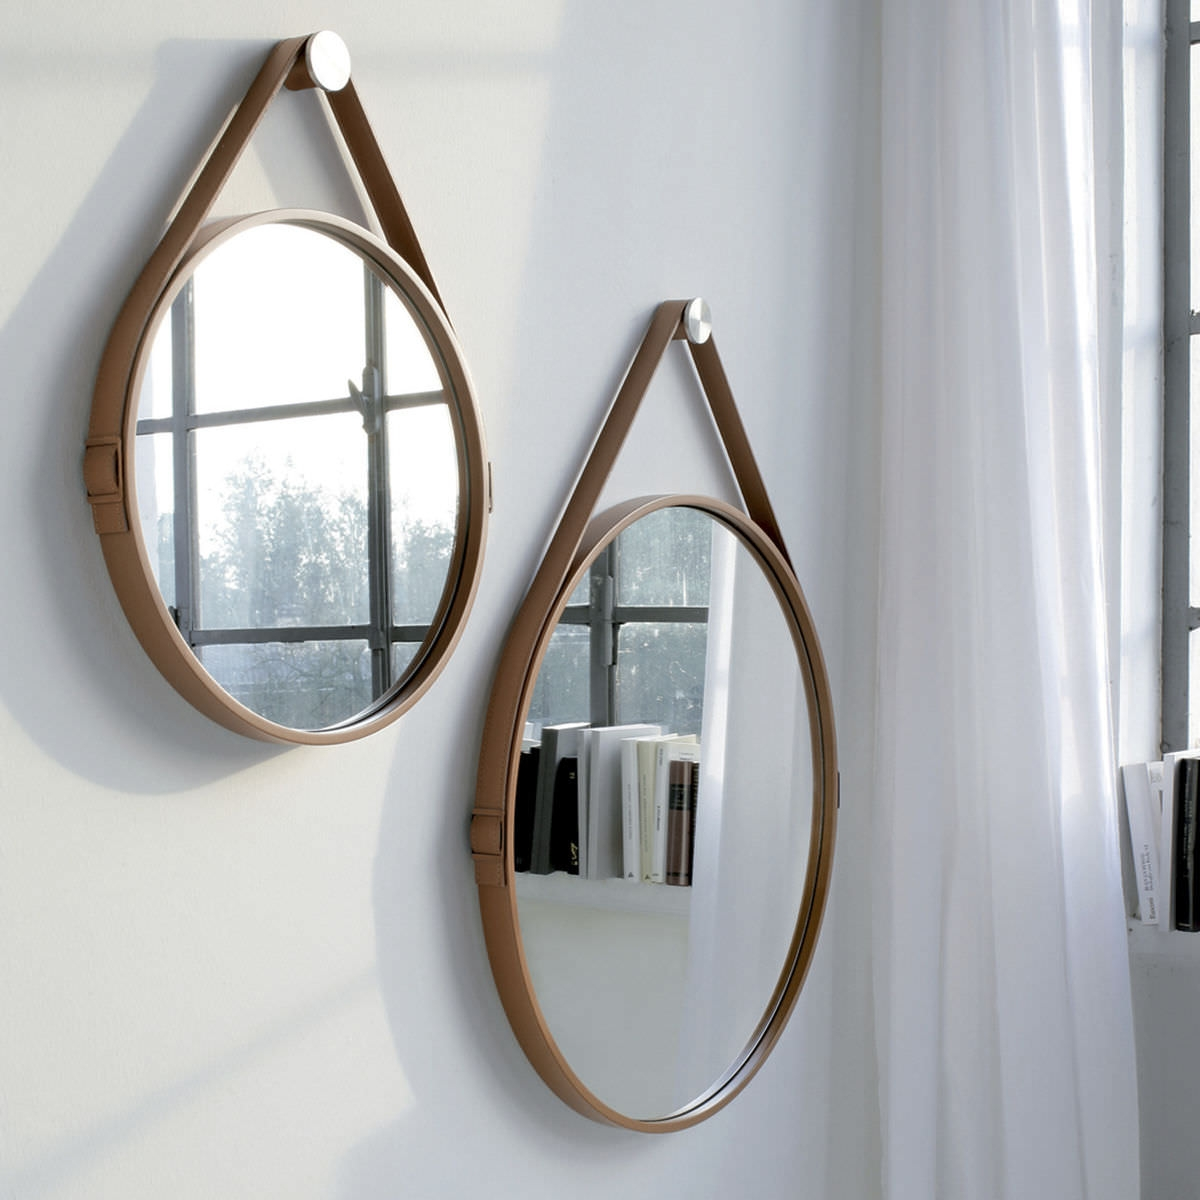 Wall Mounted Mirror Contemporary Round Leather George 24in With Regard To Leather Mirrors Wall (Image 15 of 15)